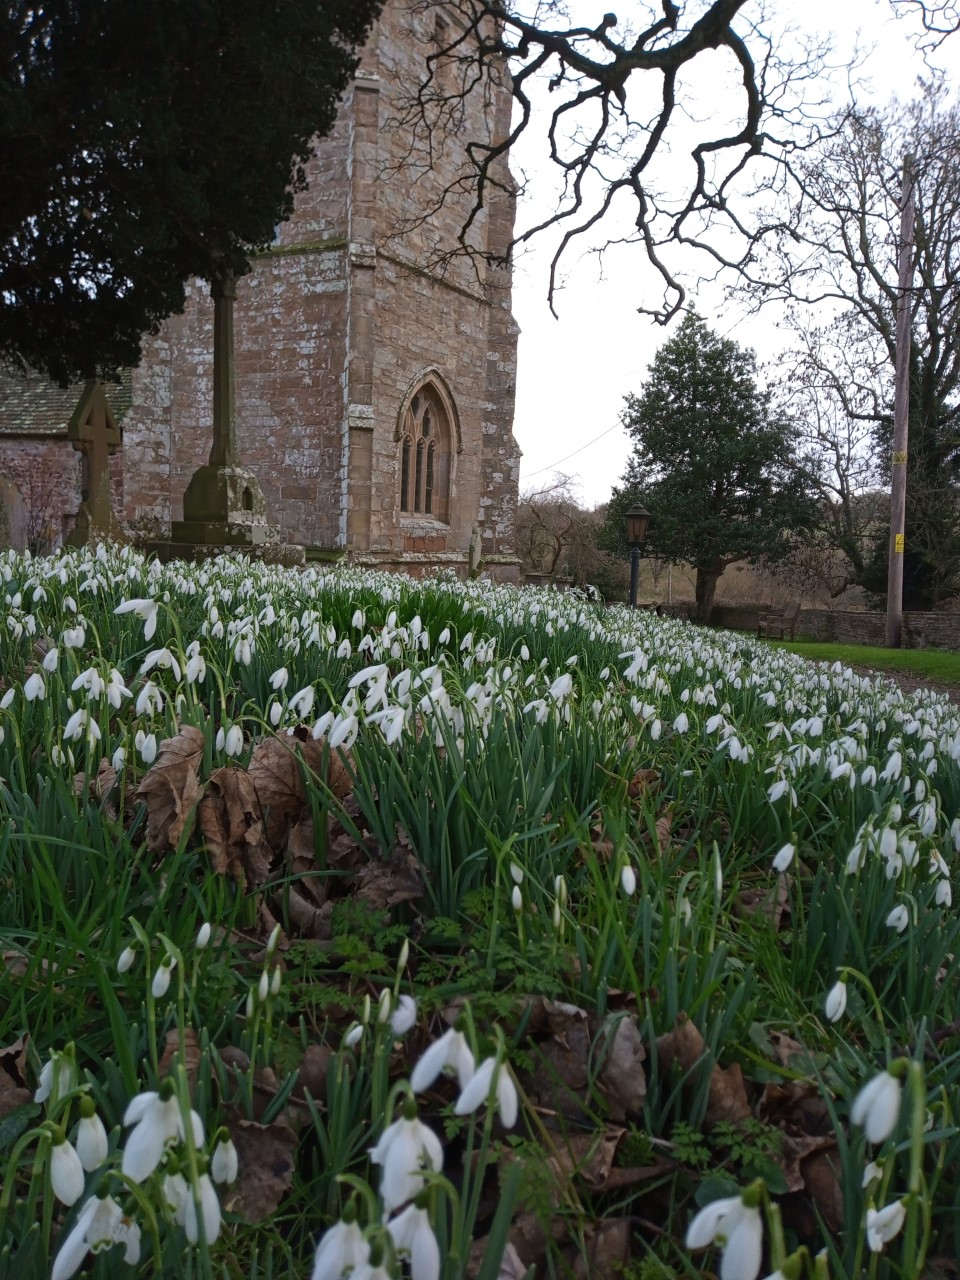 White snowdrops in the churchyard